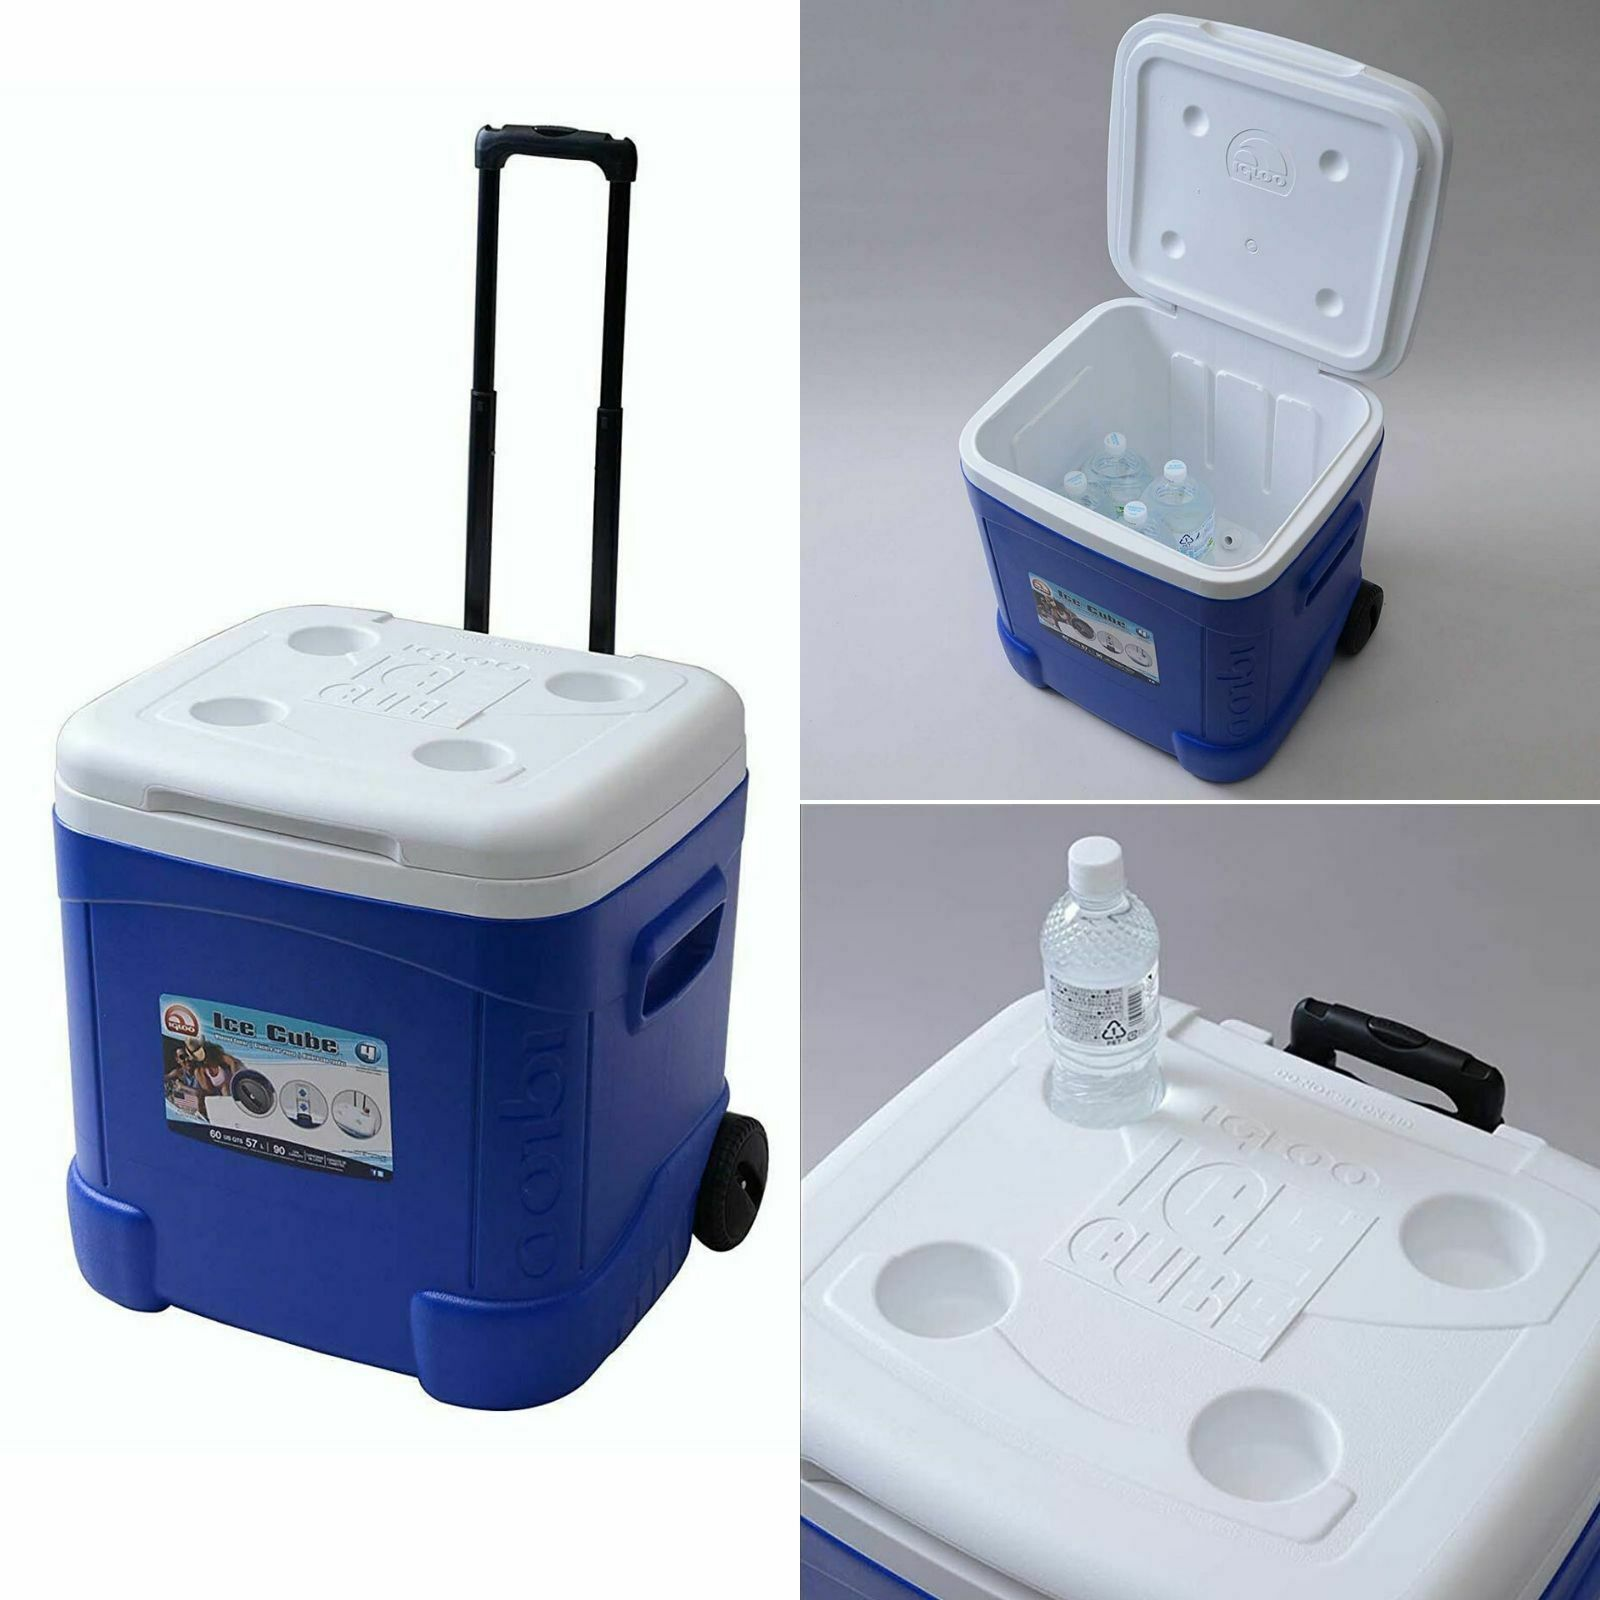 Ice Cube Roller Cooler 60 Quart Durable Wheels Reinforced To